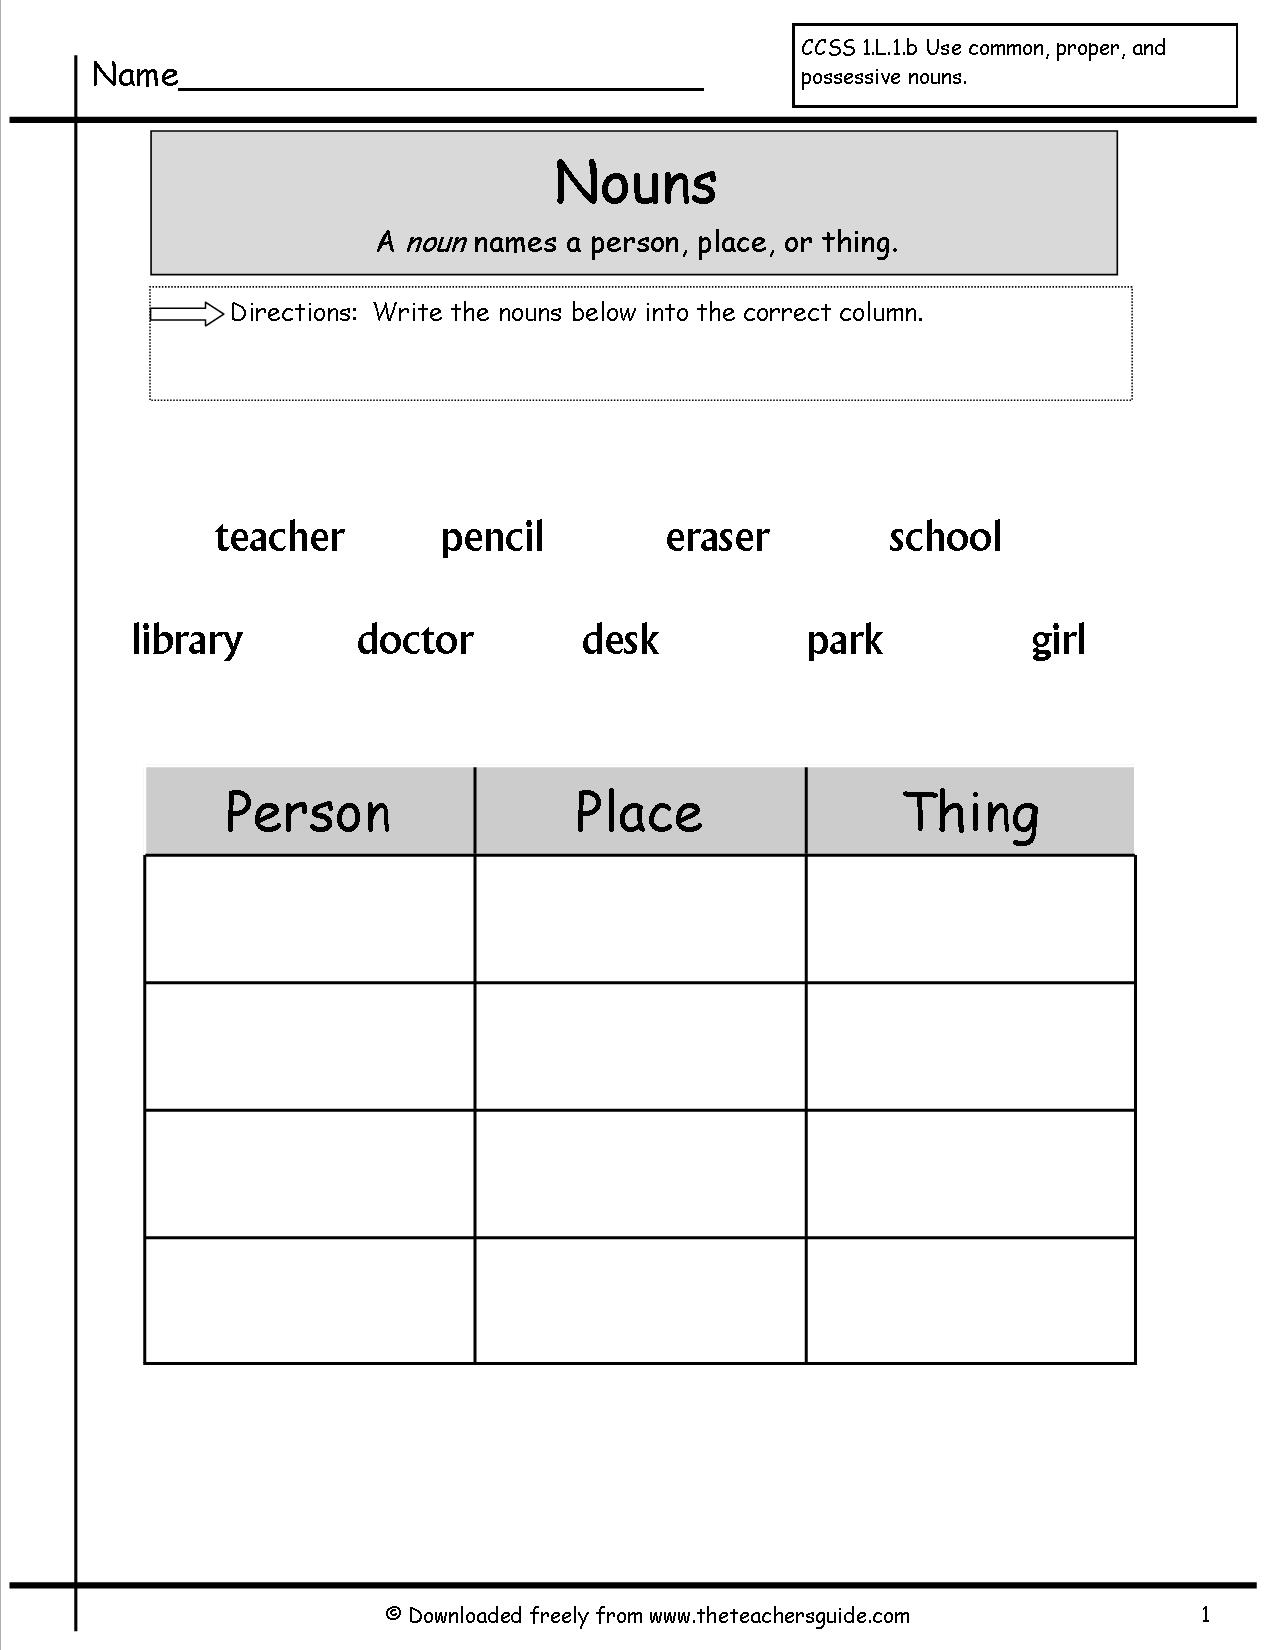 16 Best Images Of Worksheets Adjectives And Pronouns